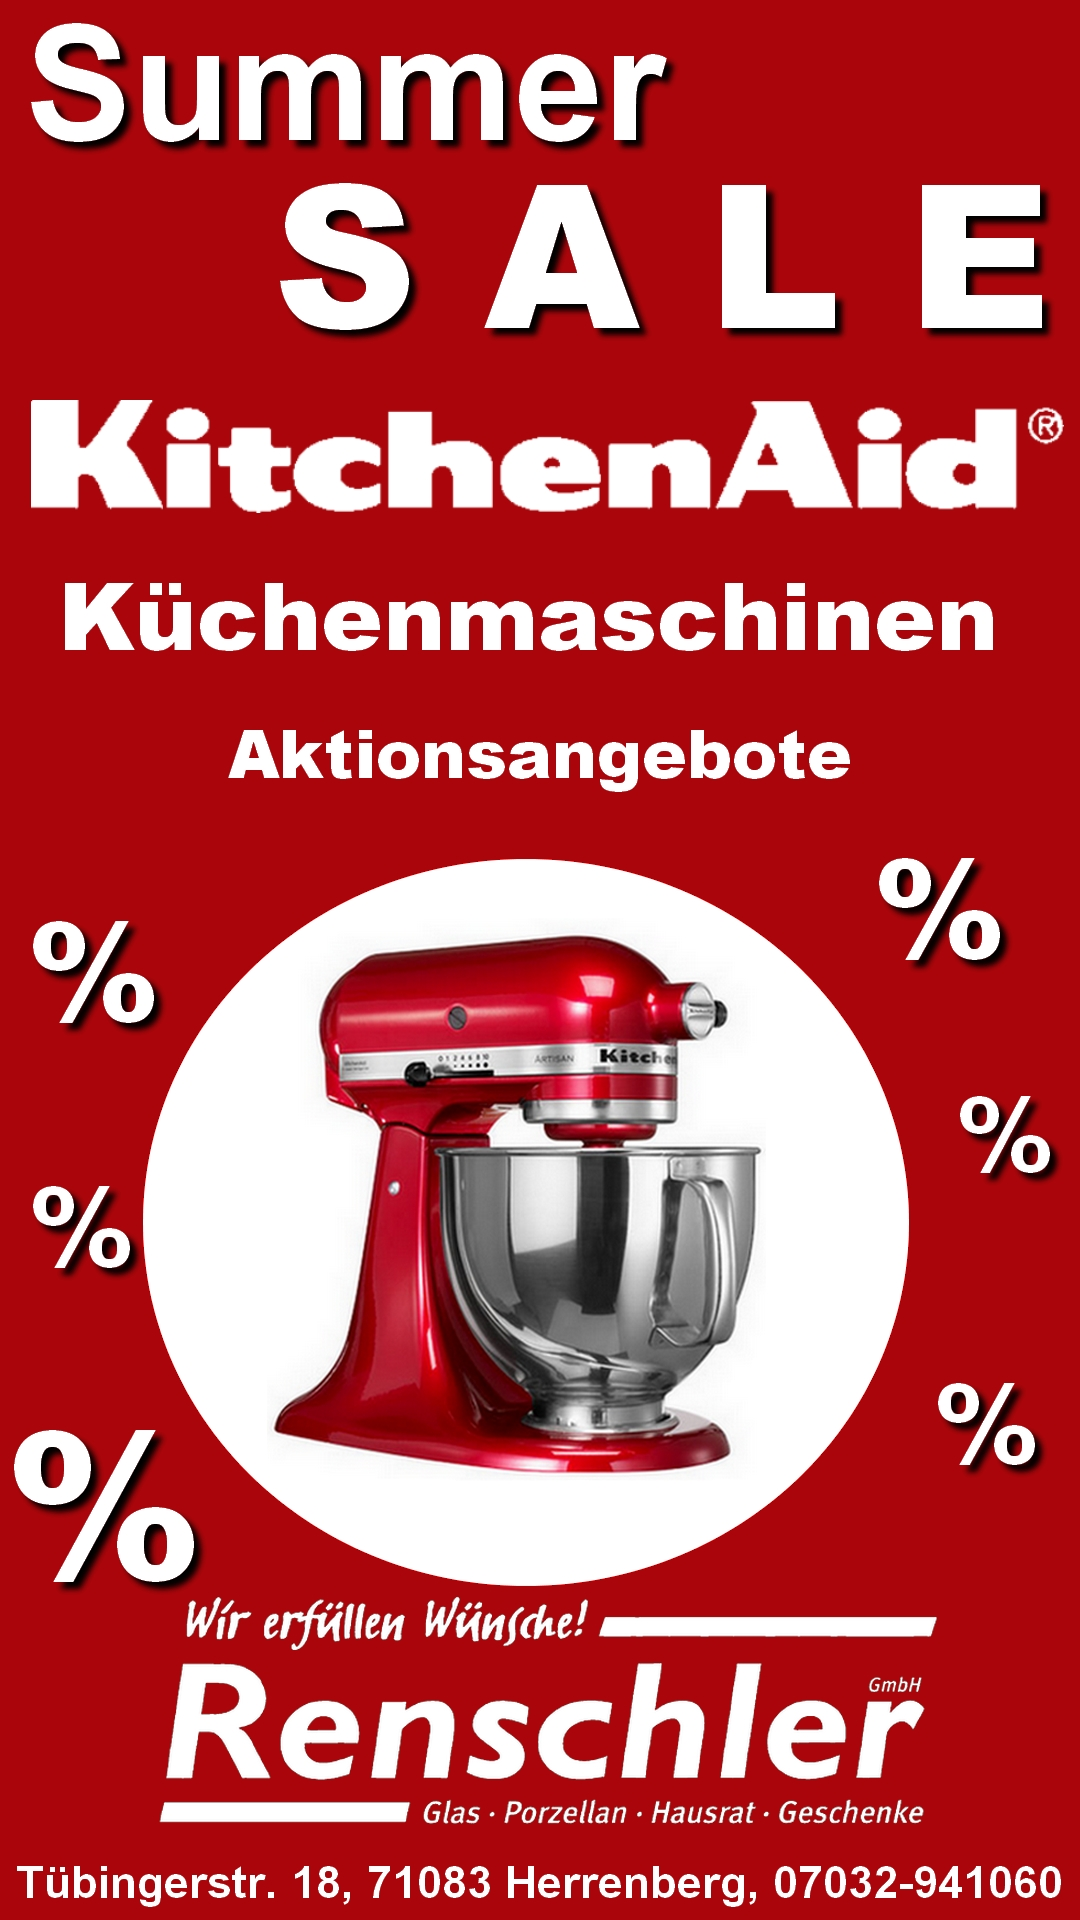 Summer Sale KitchenAid